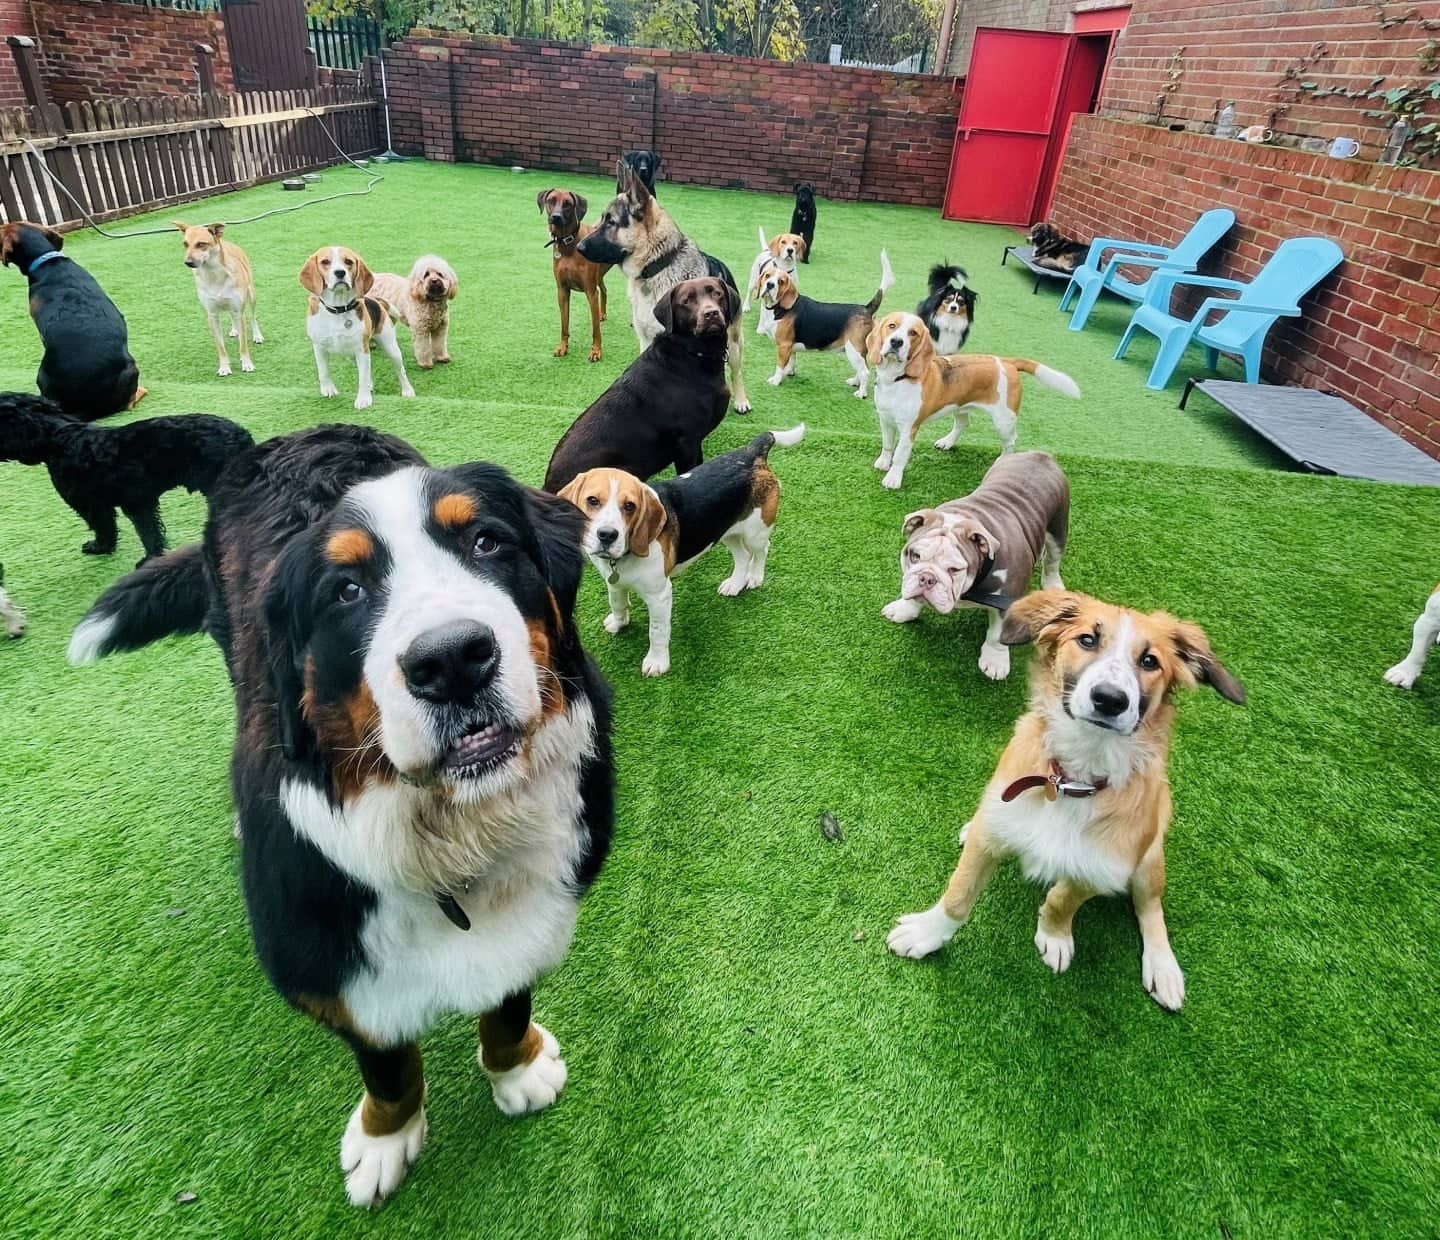 Job Vacancy: We're Looking for a Doggy Day Care Assistant